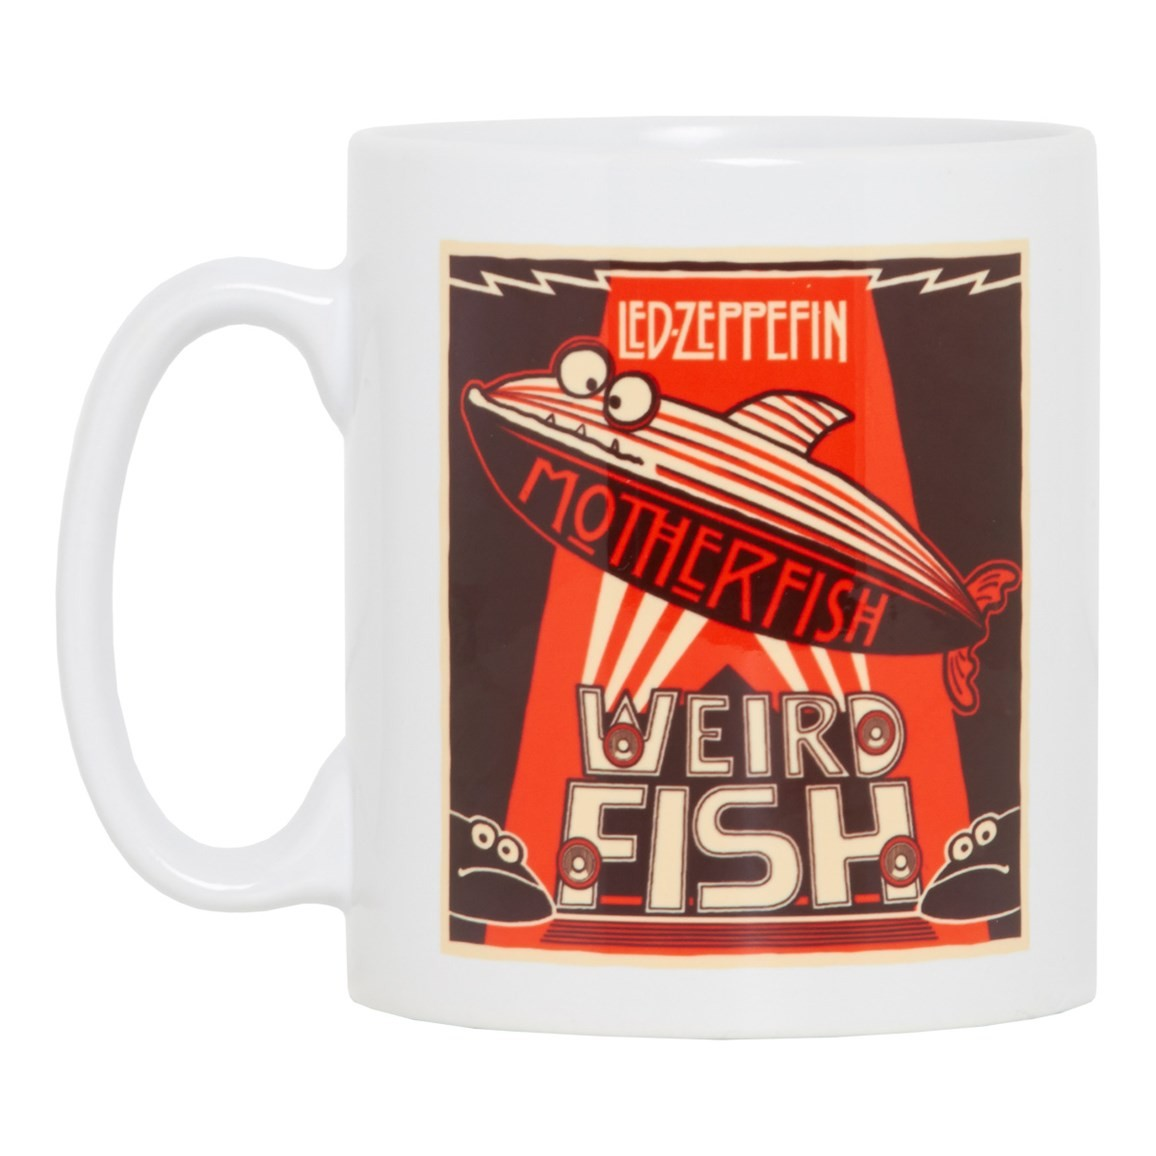 Image of Motherfish Graphic Print Mug White